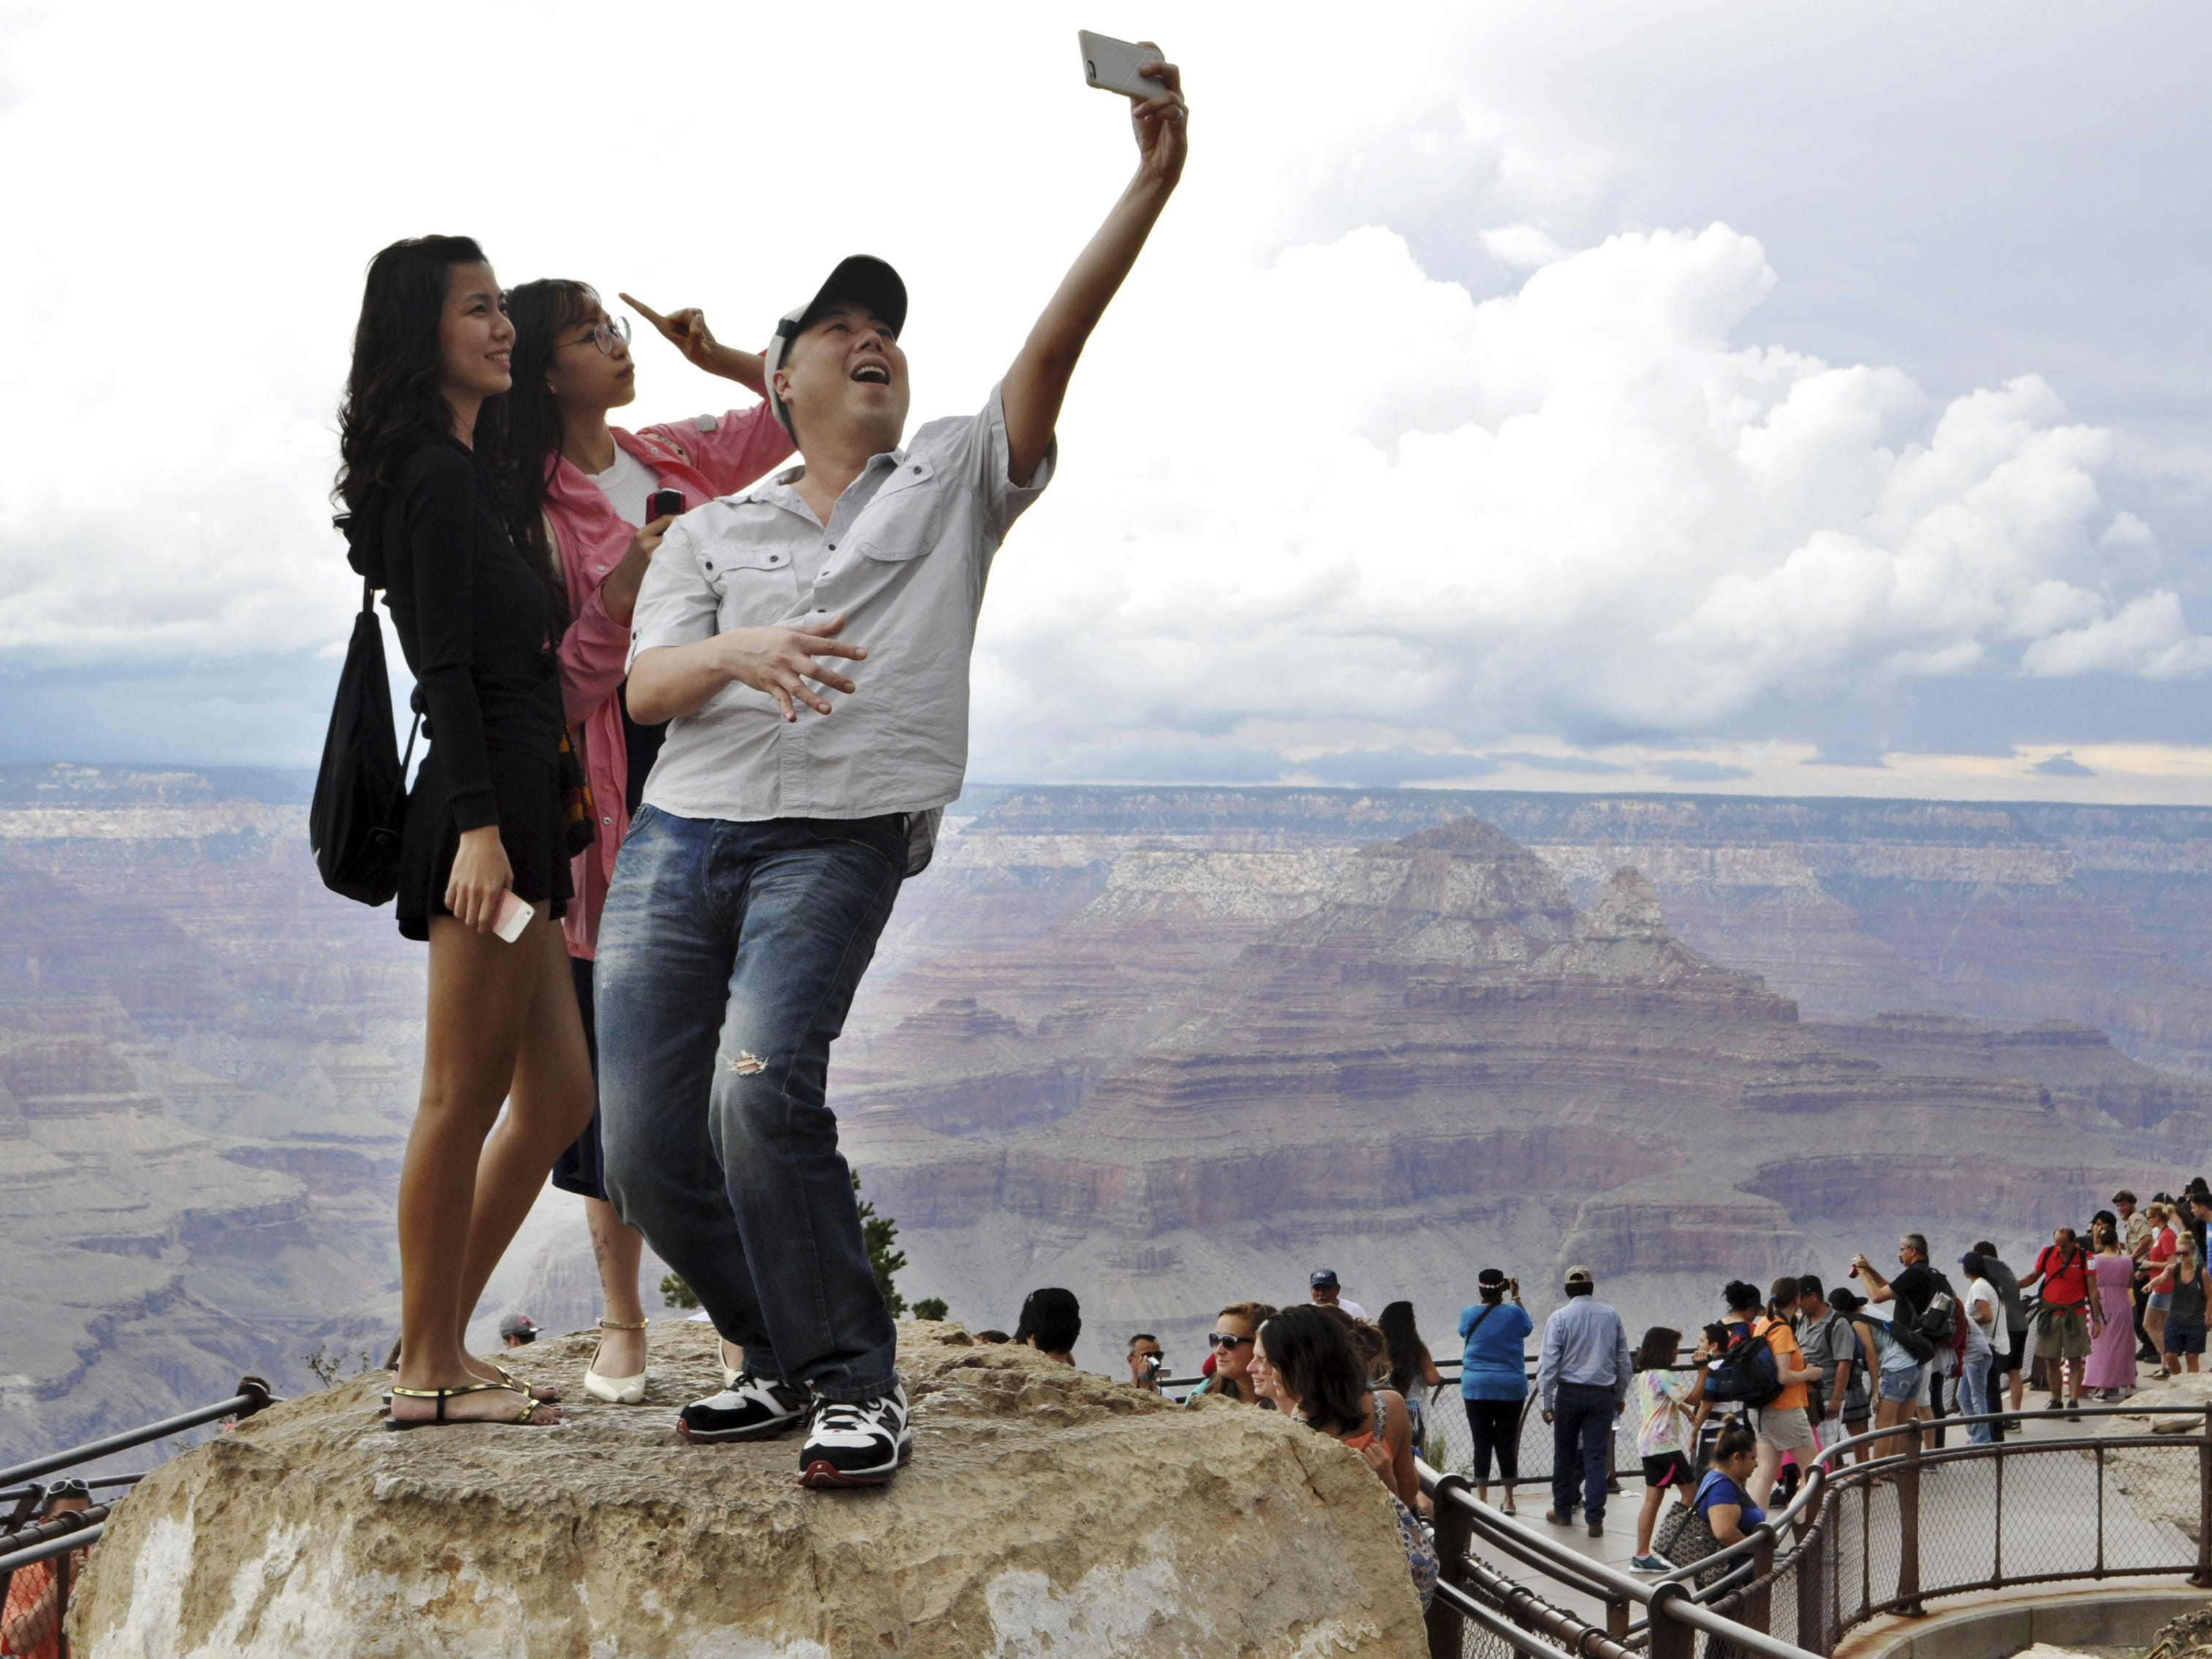 Tourists Joseph Lin, Ning Chao, center, and Linda Wang, left, pose for a selfie along the south rim at Grand Canyon National Park.